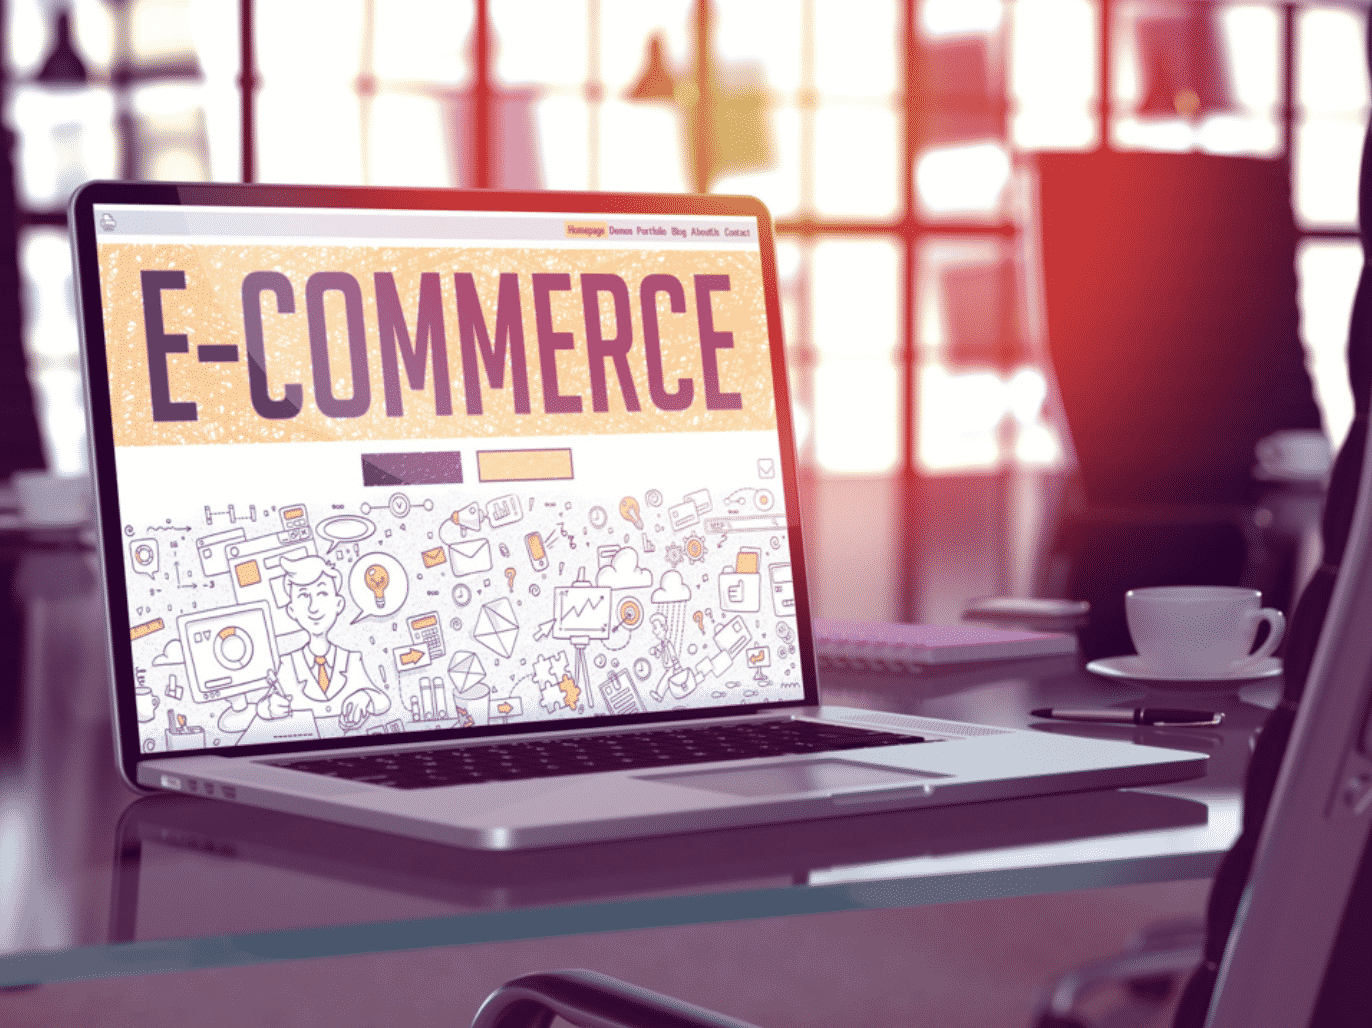 5 Money-Saving Tips for Starting Your New Ecommerce Store